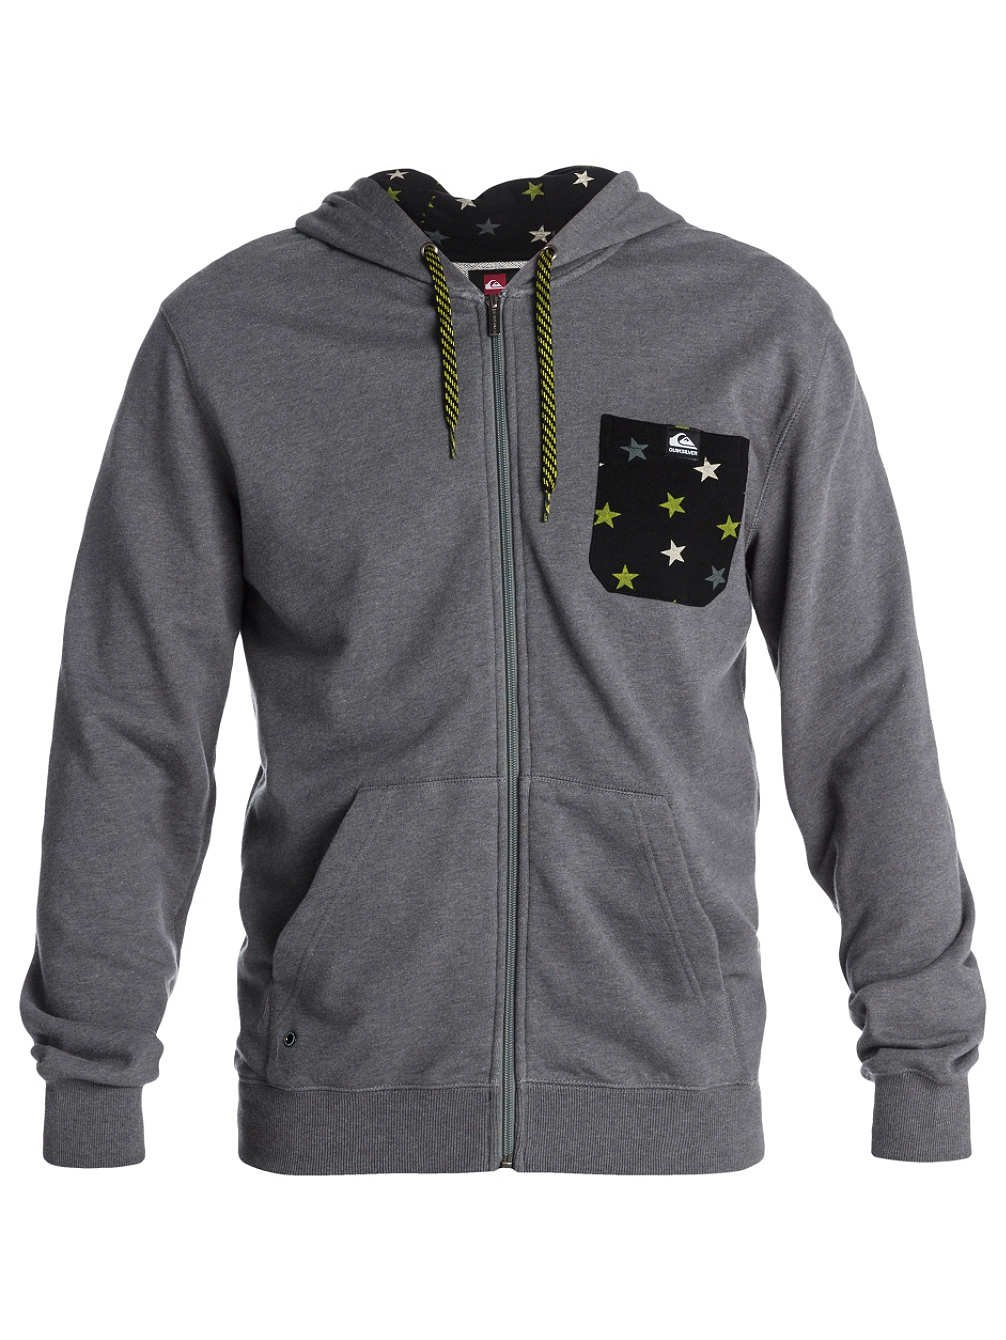 Sweater Hooded Zip Men Quiksilver Solana Terry Star Hoodie